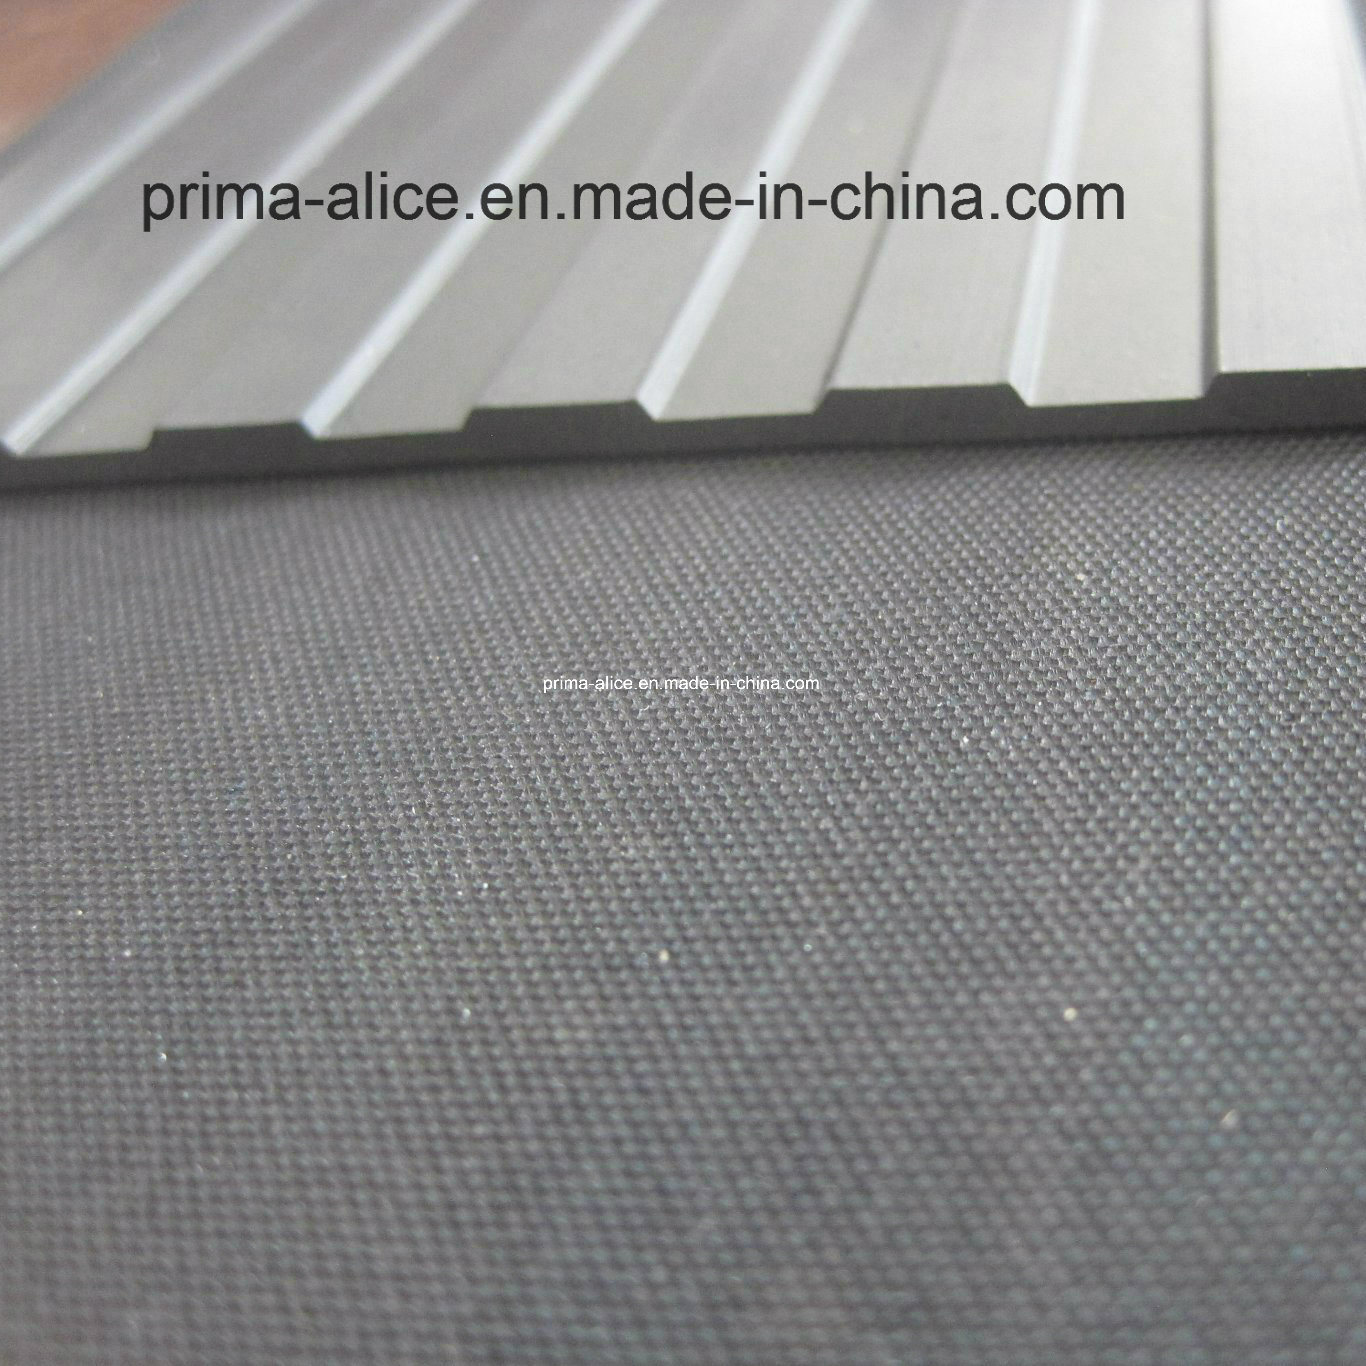 rubber china mat commercial exercise gym tiles rolls product recycled floor interlocking flooring roll epdm zmajciuvcogd